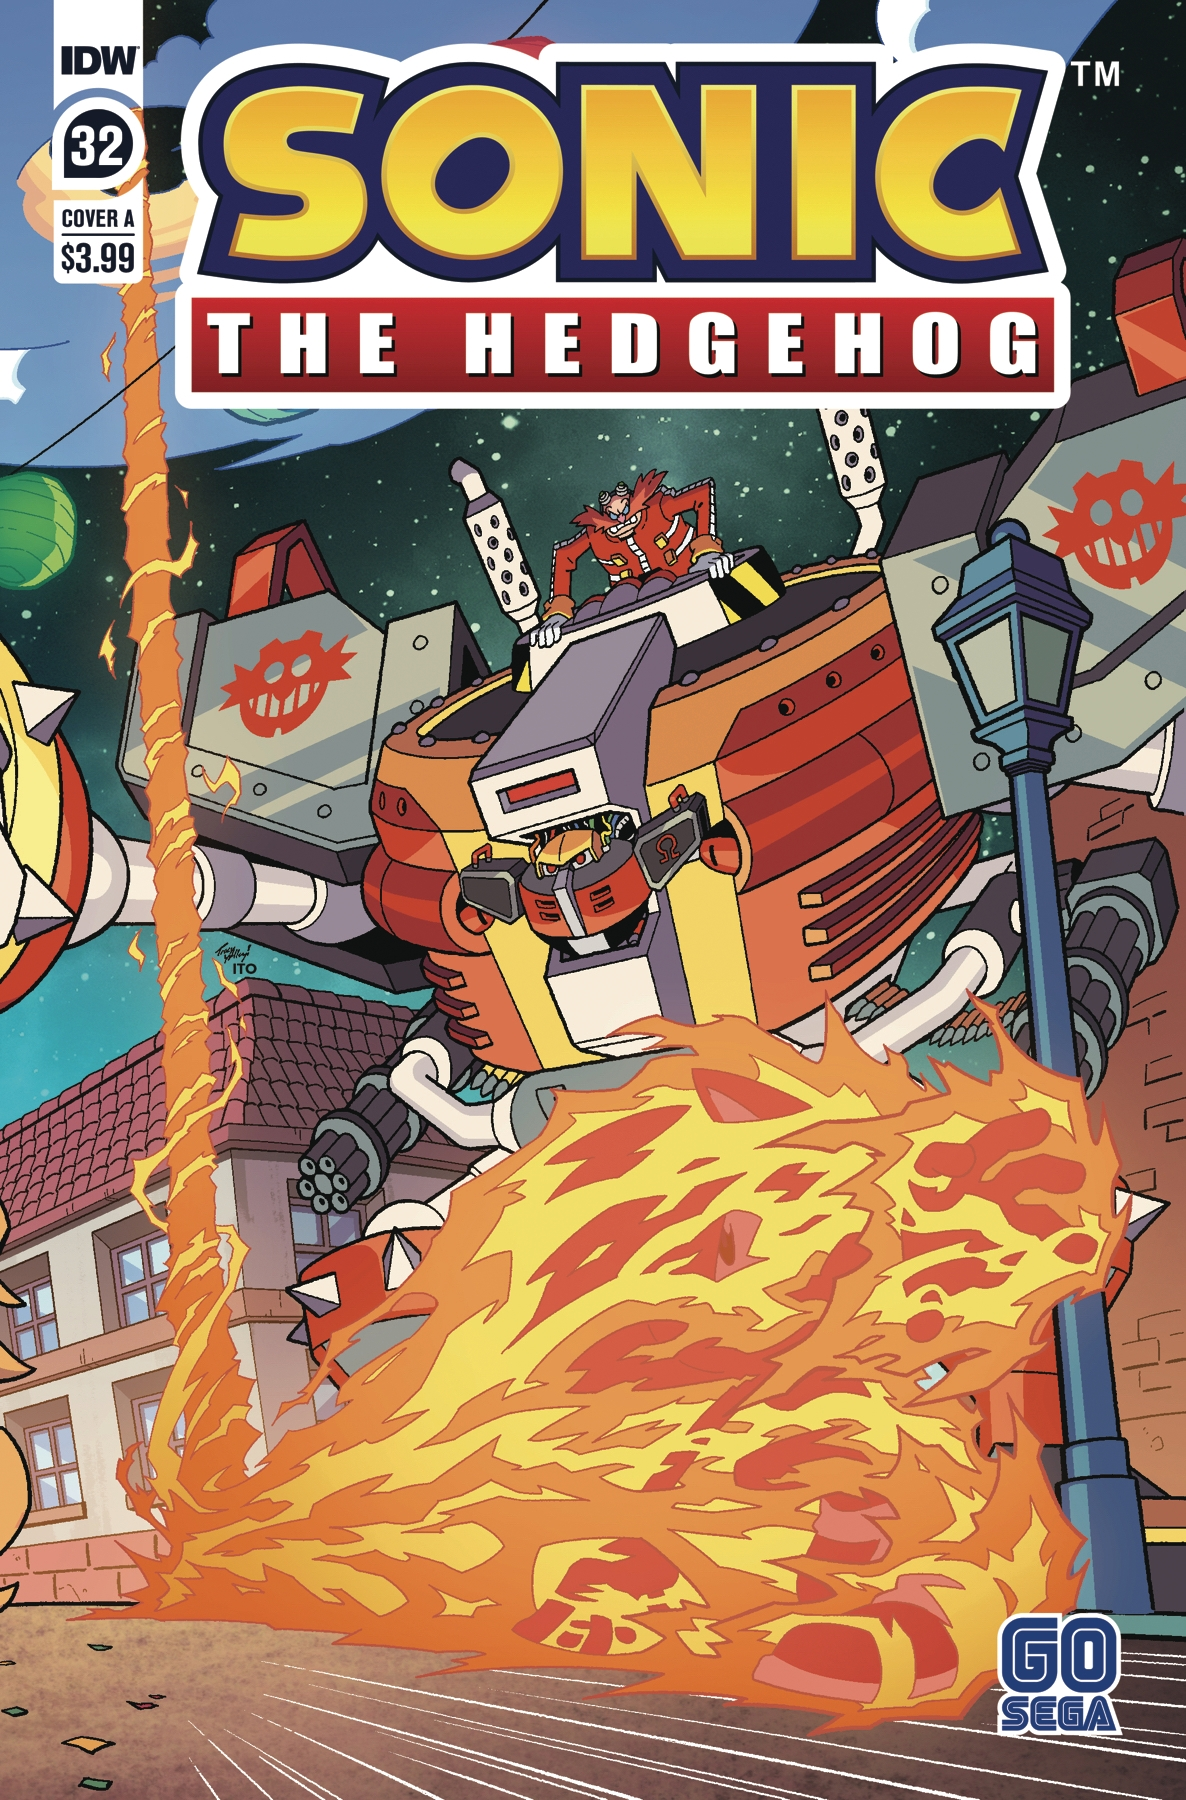 Sonic The Hedgehog #32